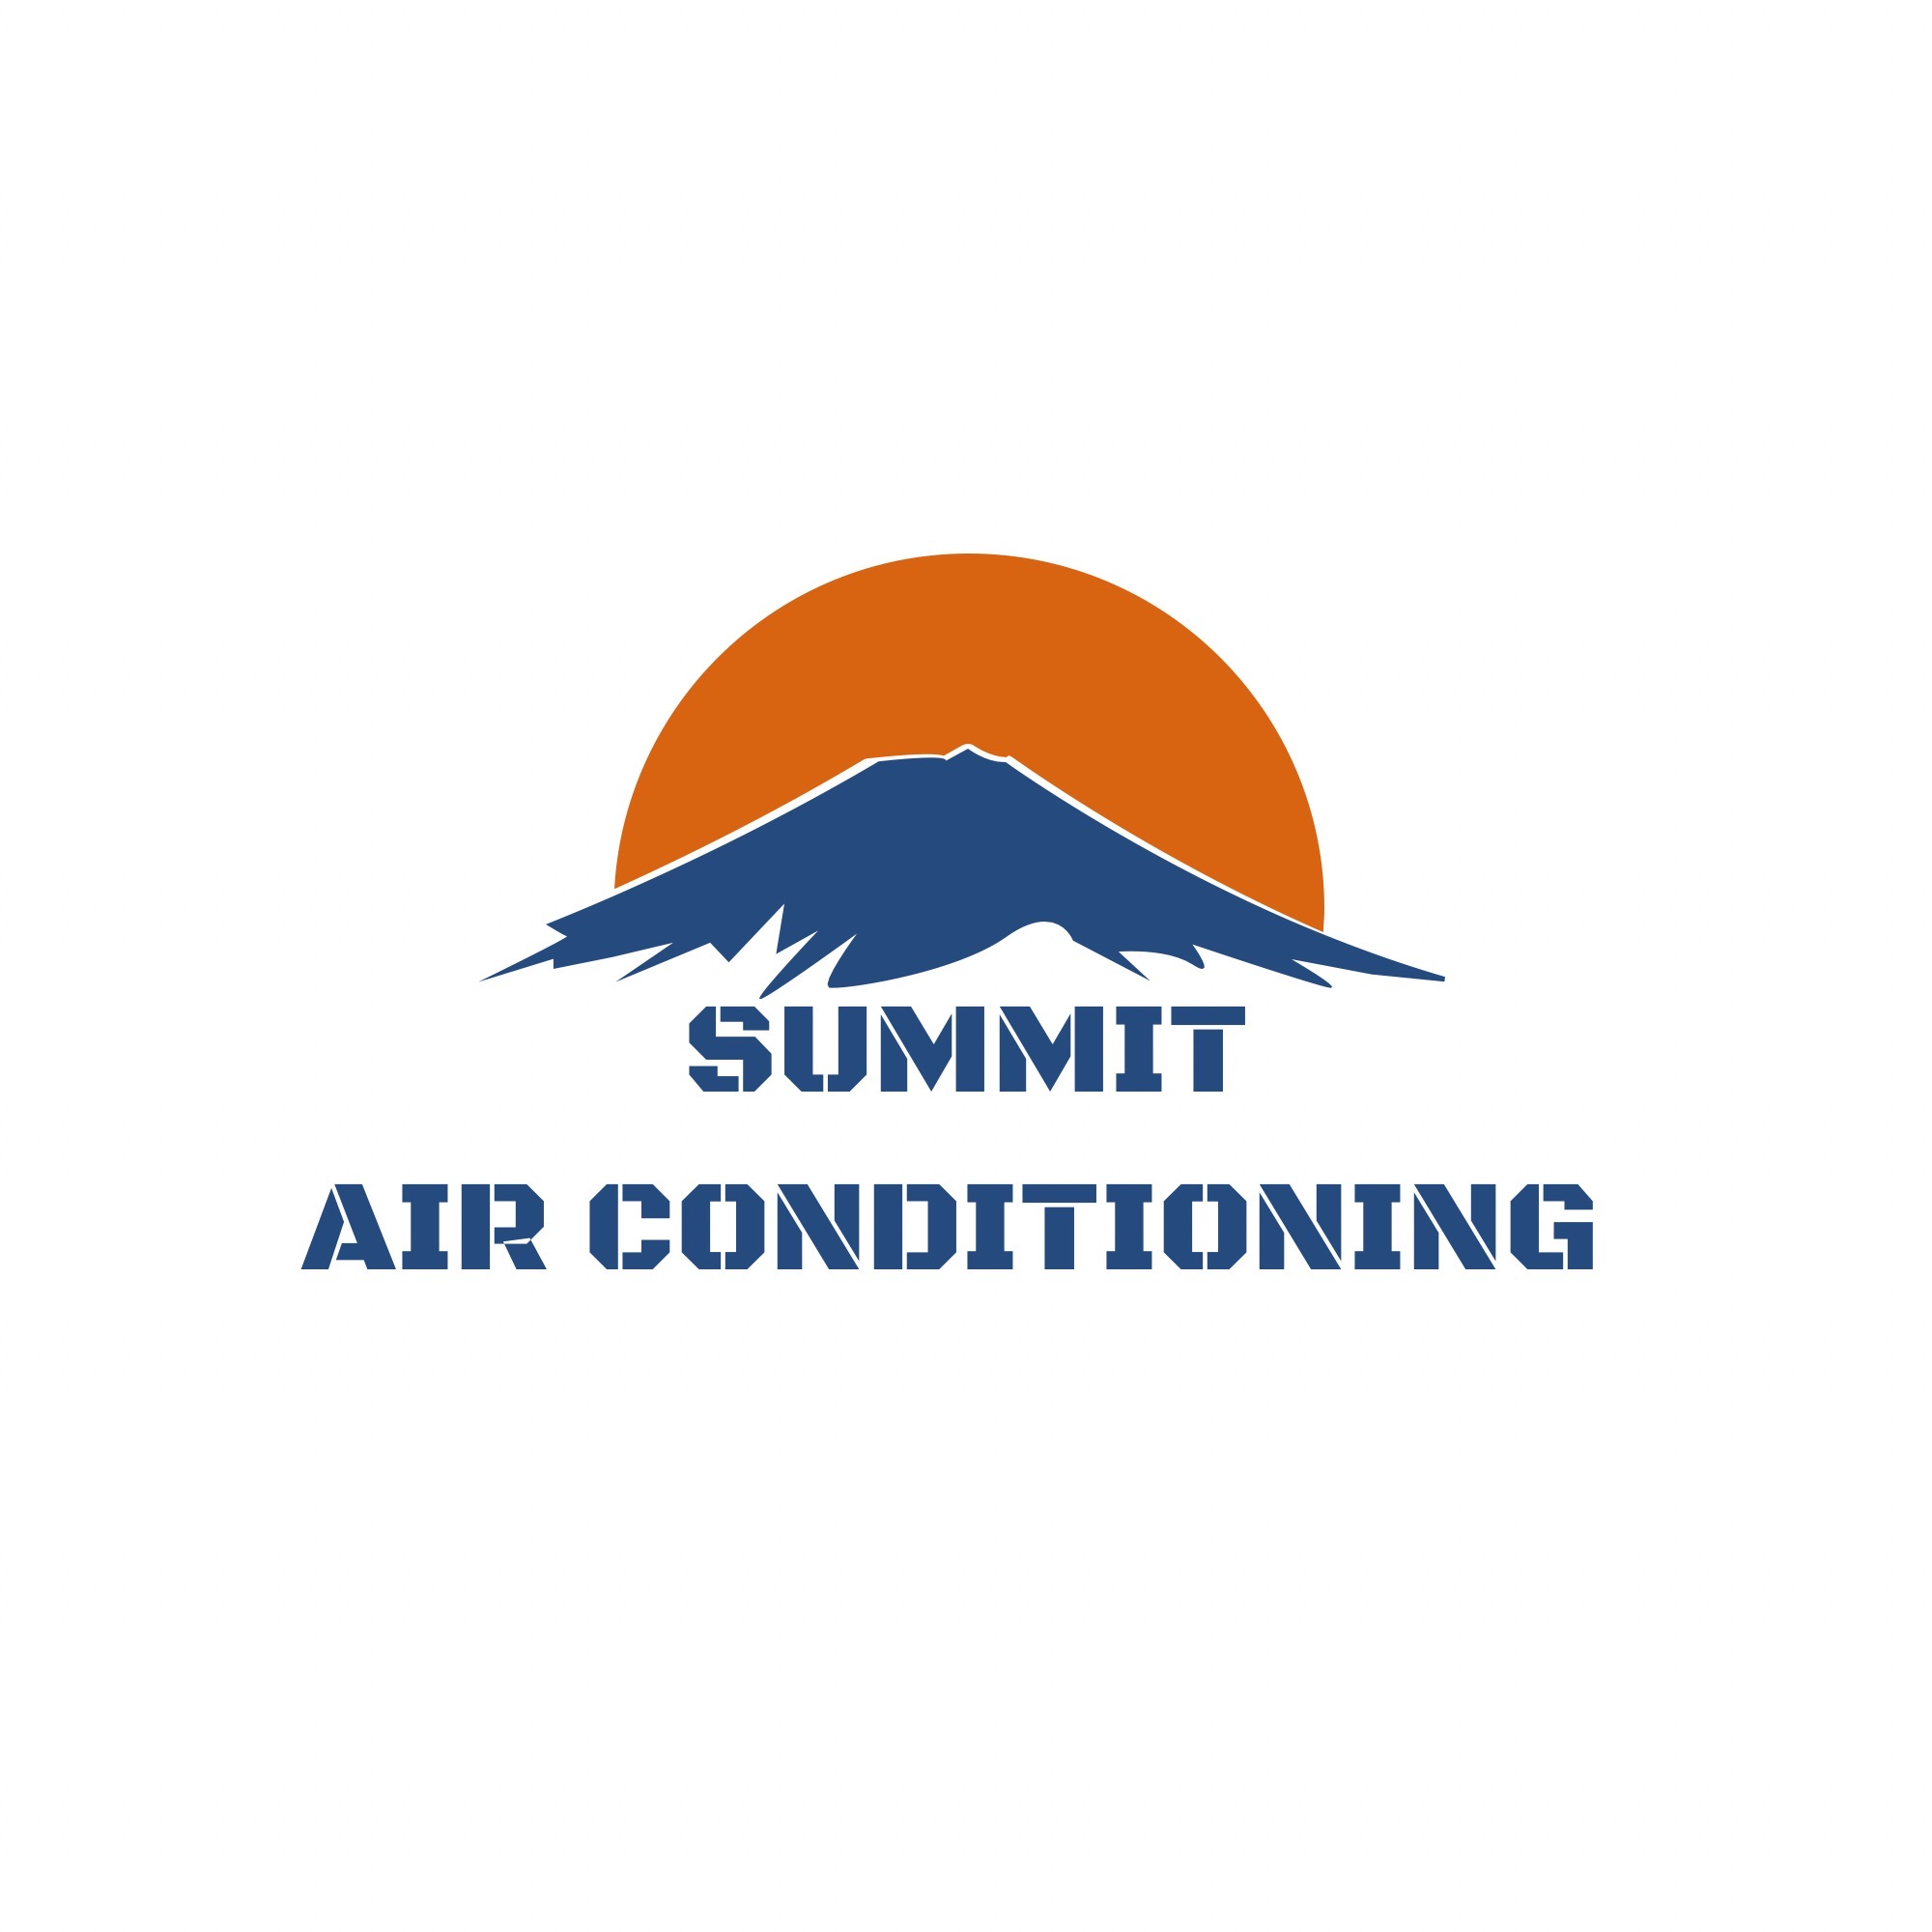 Summit Air Conditioning - Cardiff, South Glamorgan CF62 3LP - 07545 875748 | ShowMeLocal.com